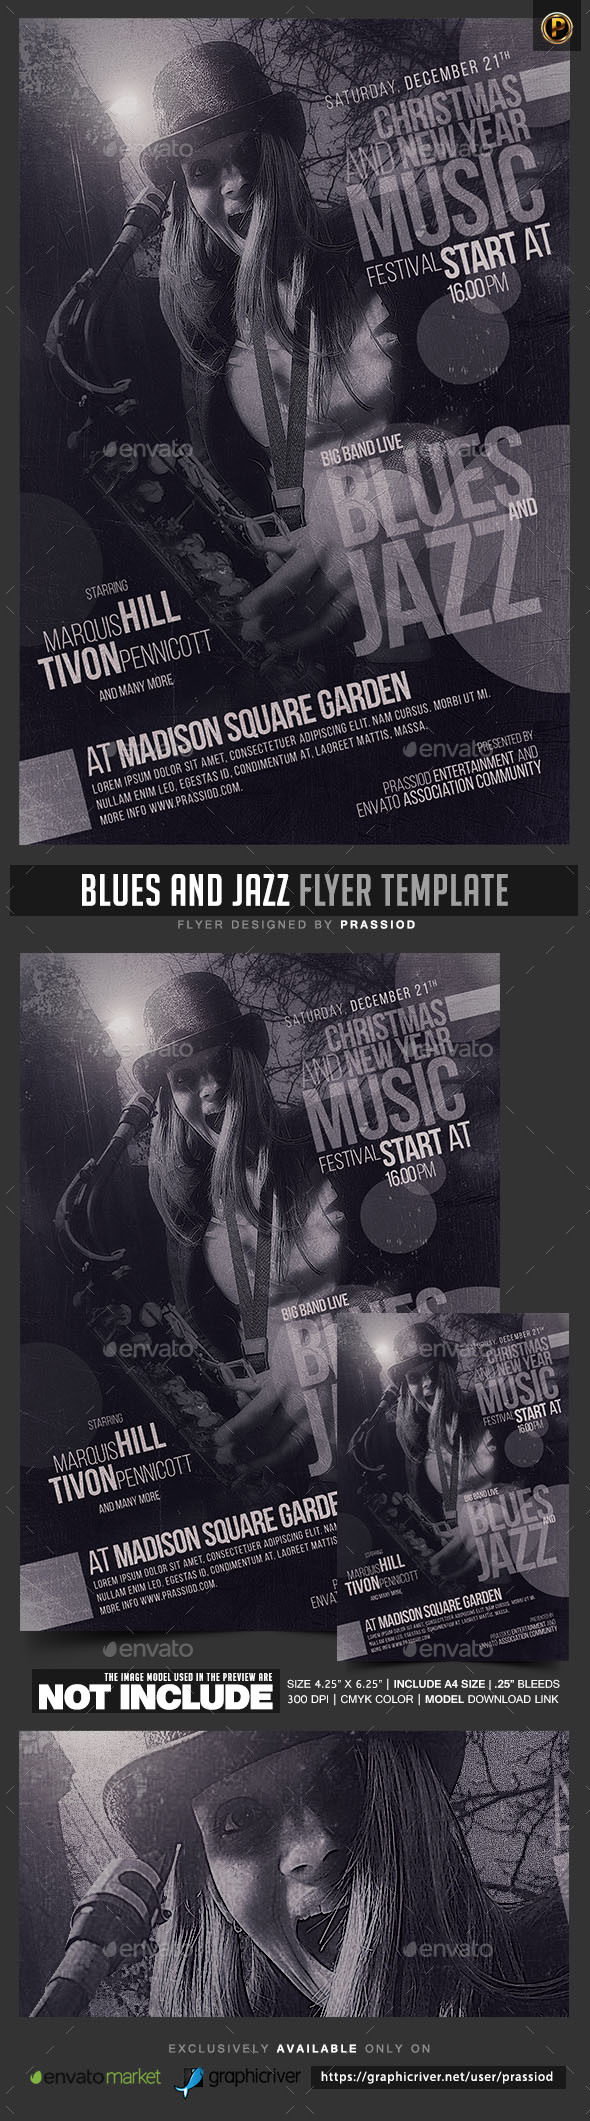 Blues And Jazz Flyer Template - Concerts Events